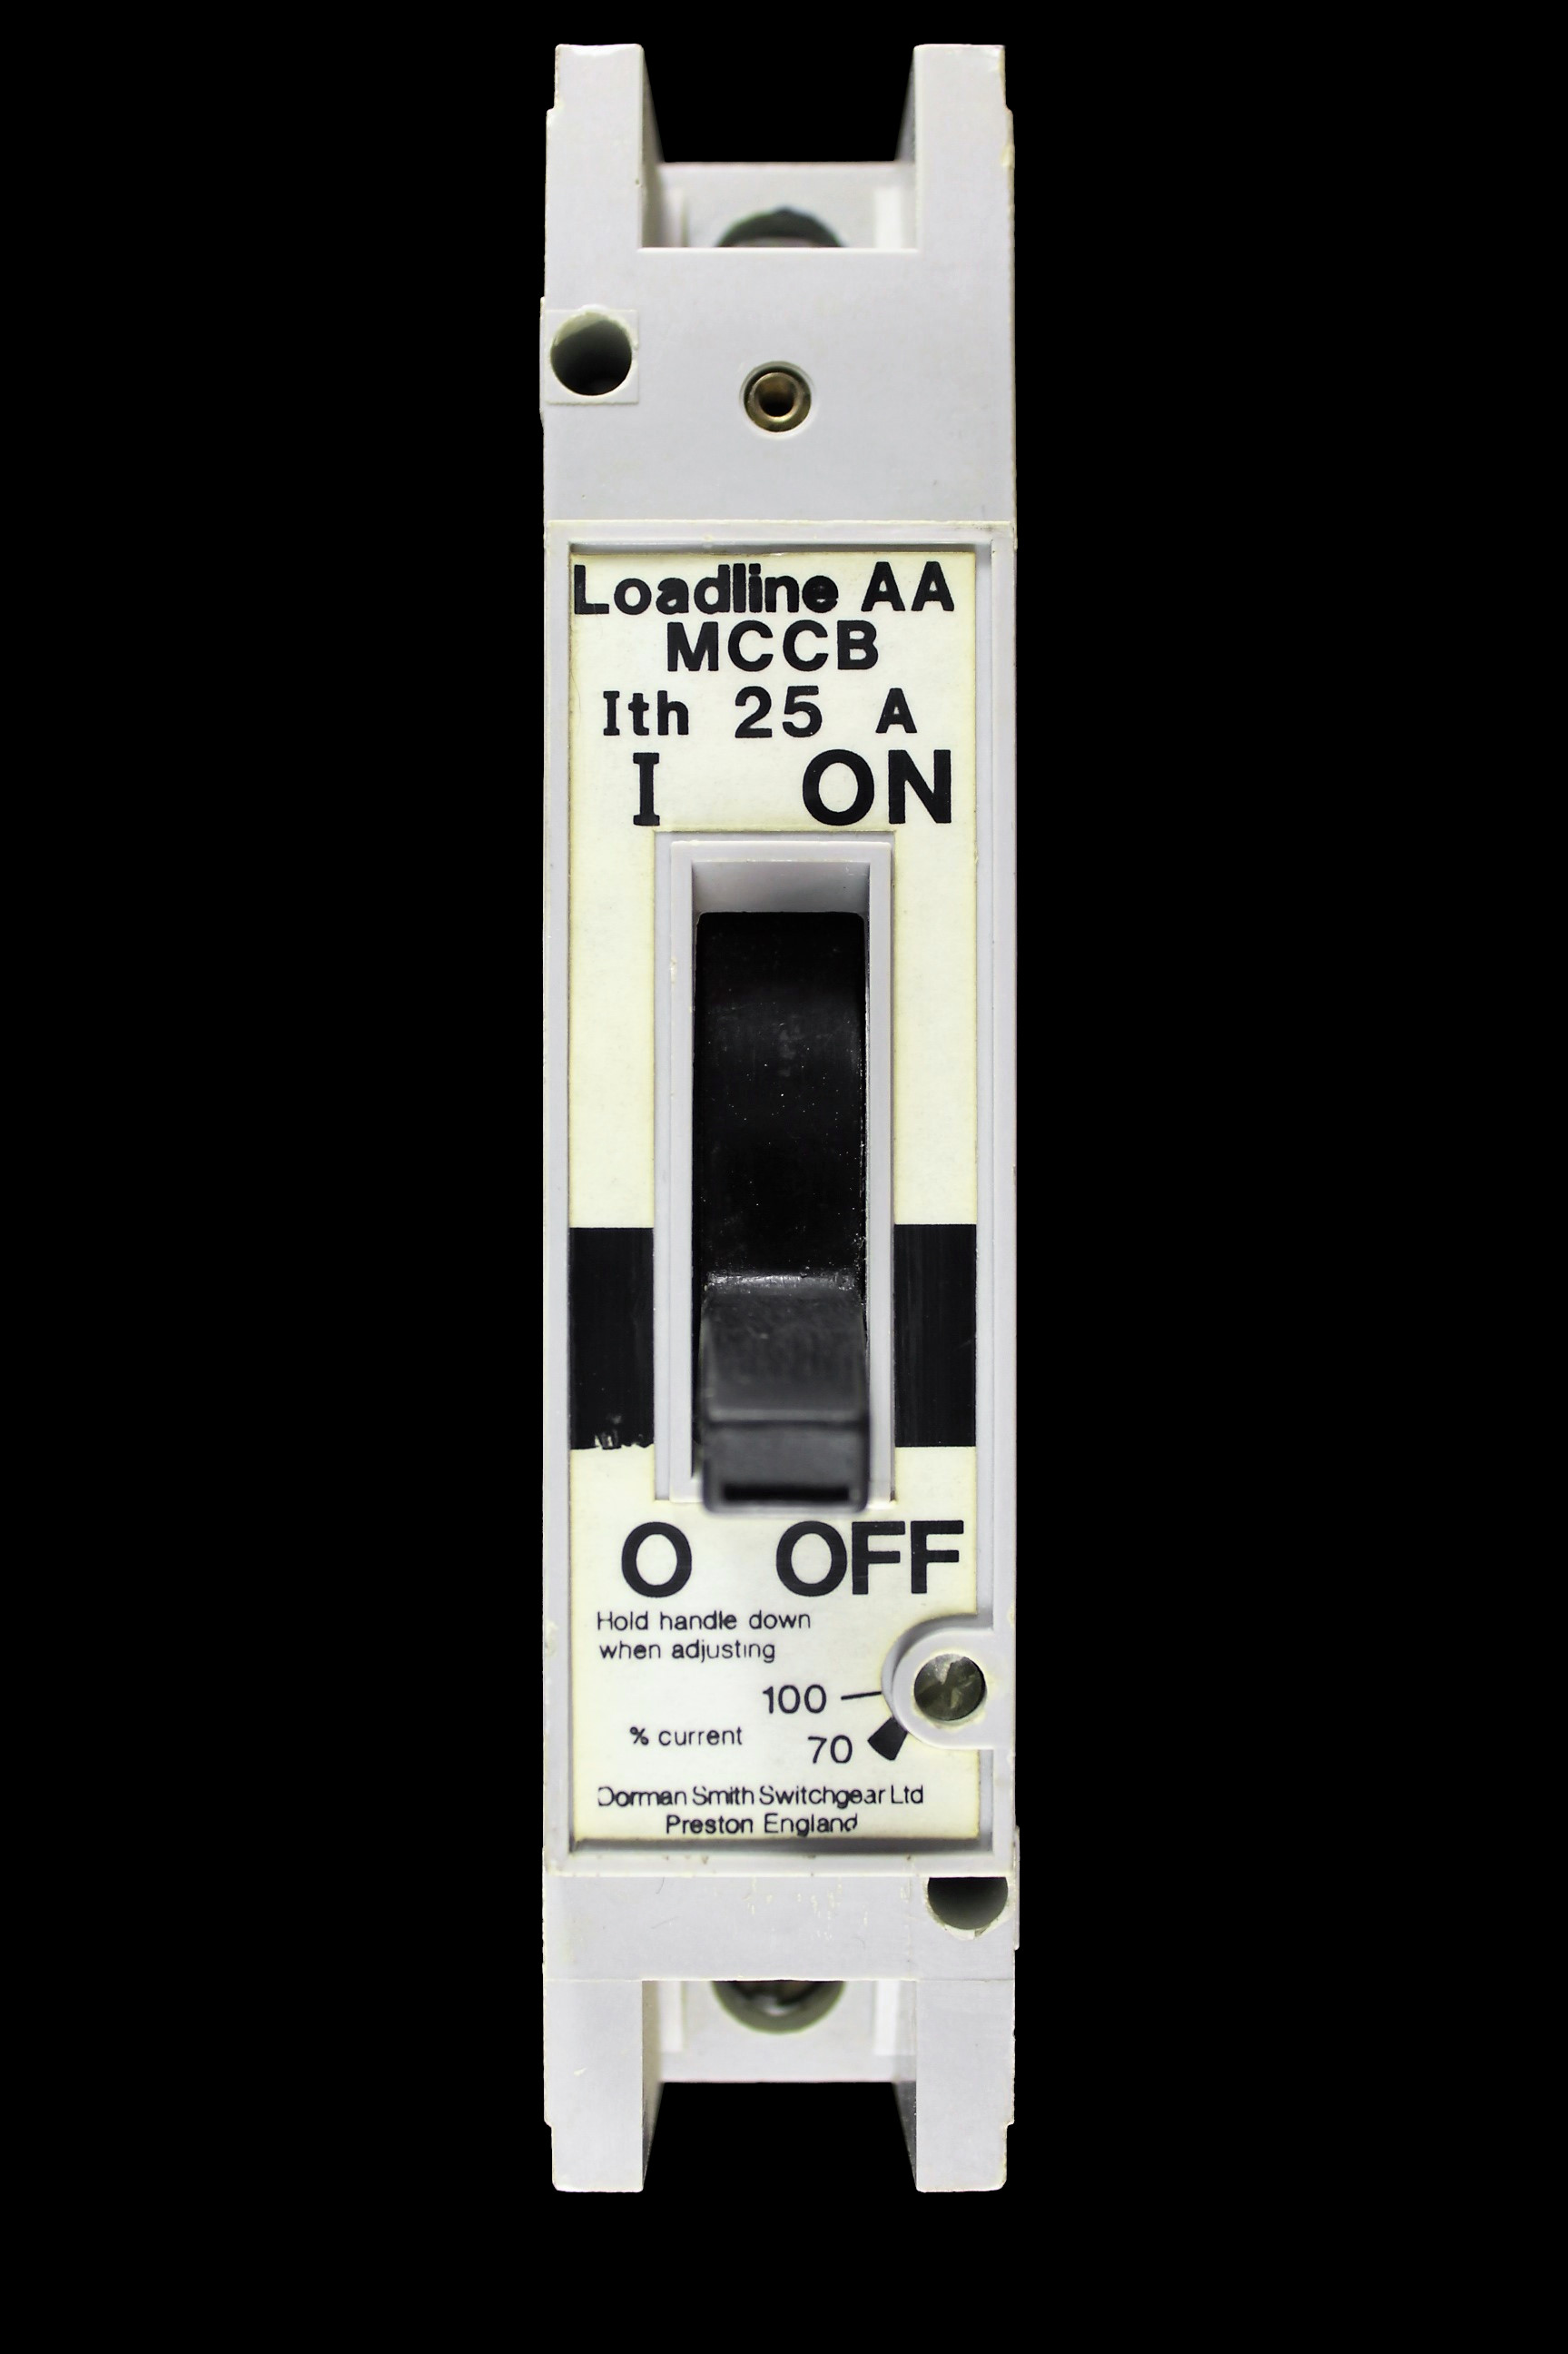 DORMAN SMITH 25 AMP MCCB LOADLINE AA WHITE